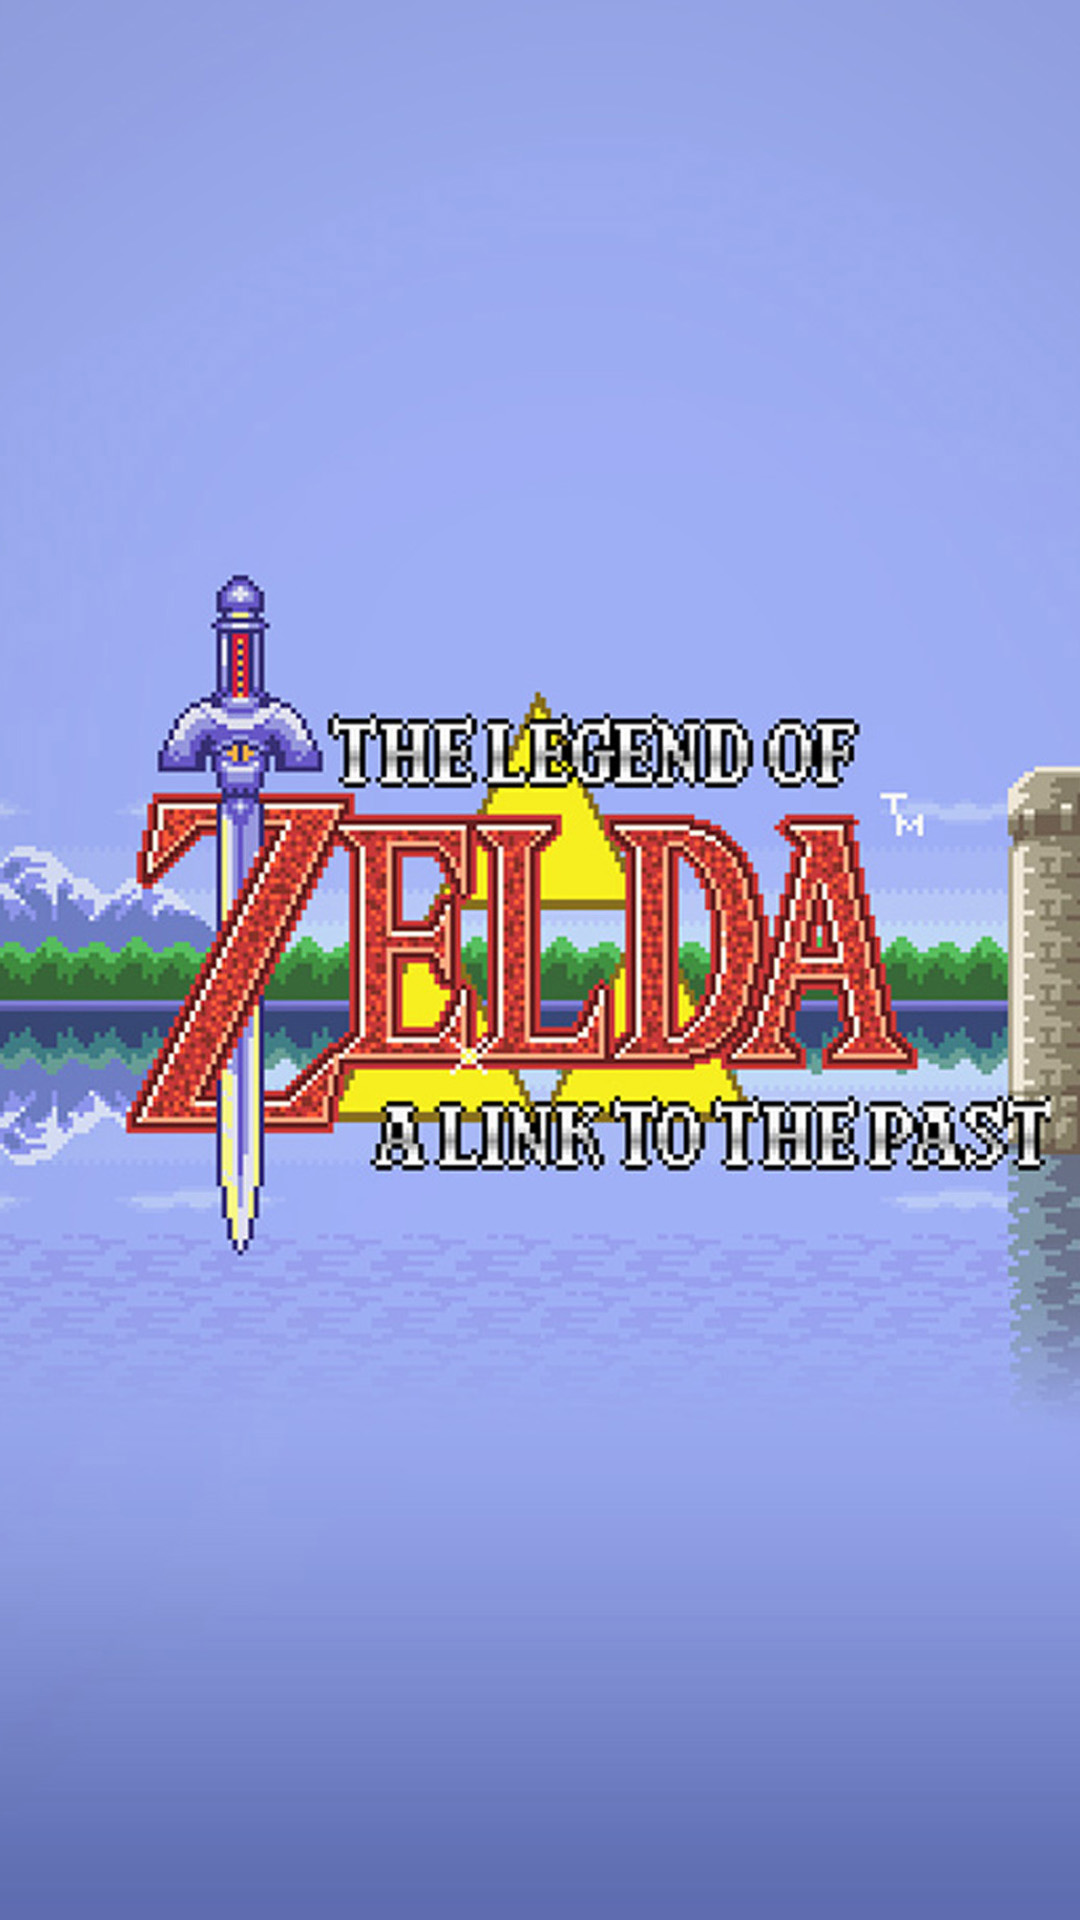 Zelda 02 wallpaper